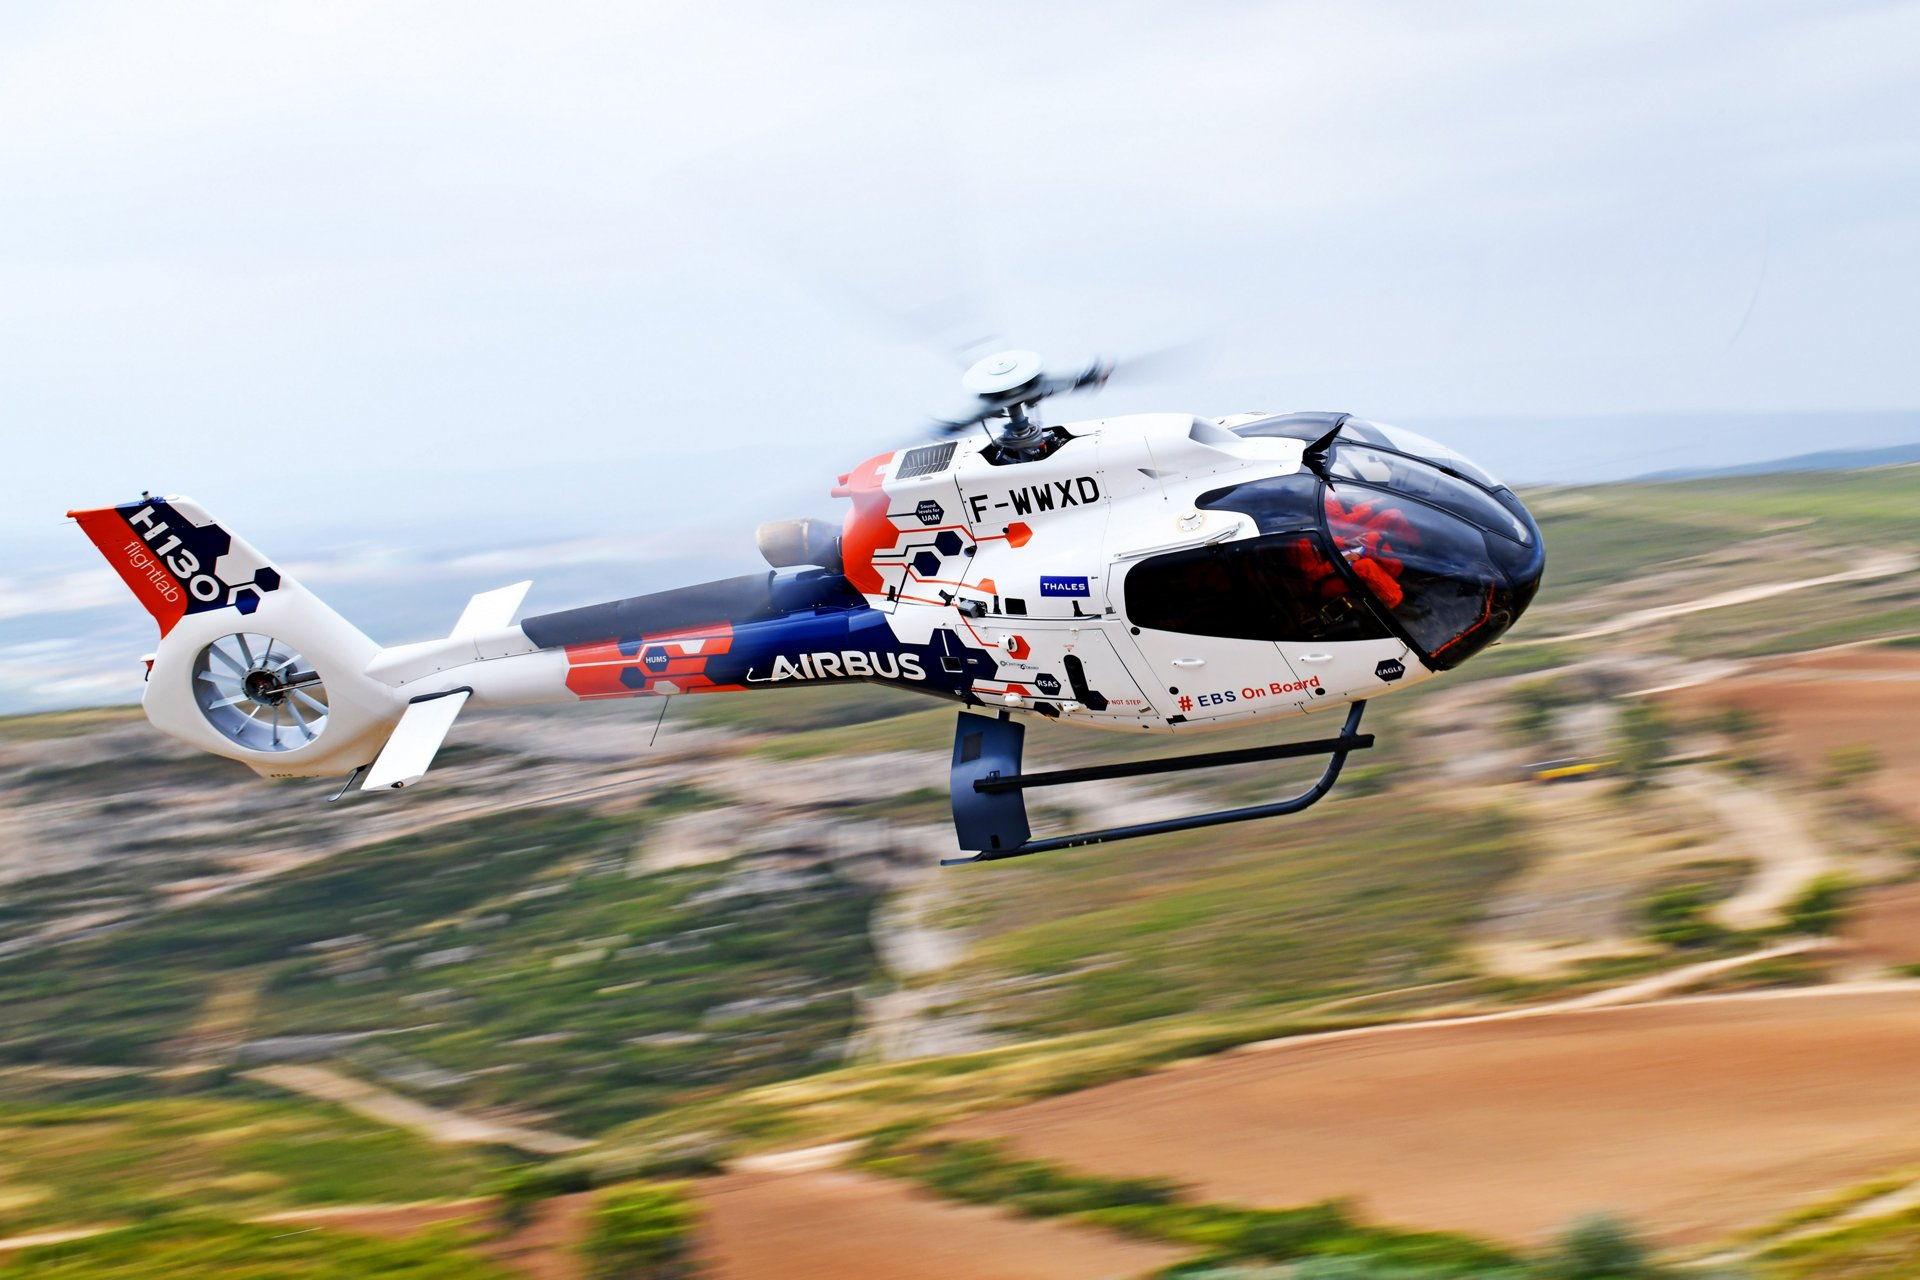 Airbus Helicopters, in partnership with the French Civil Aviation Authority DGAC, has started flight testing an engine back-up system (EBS) onboard its Flightlab.